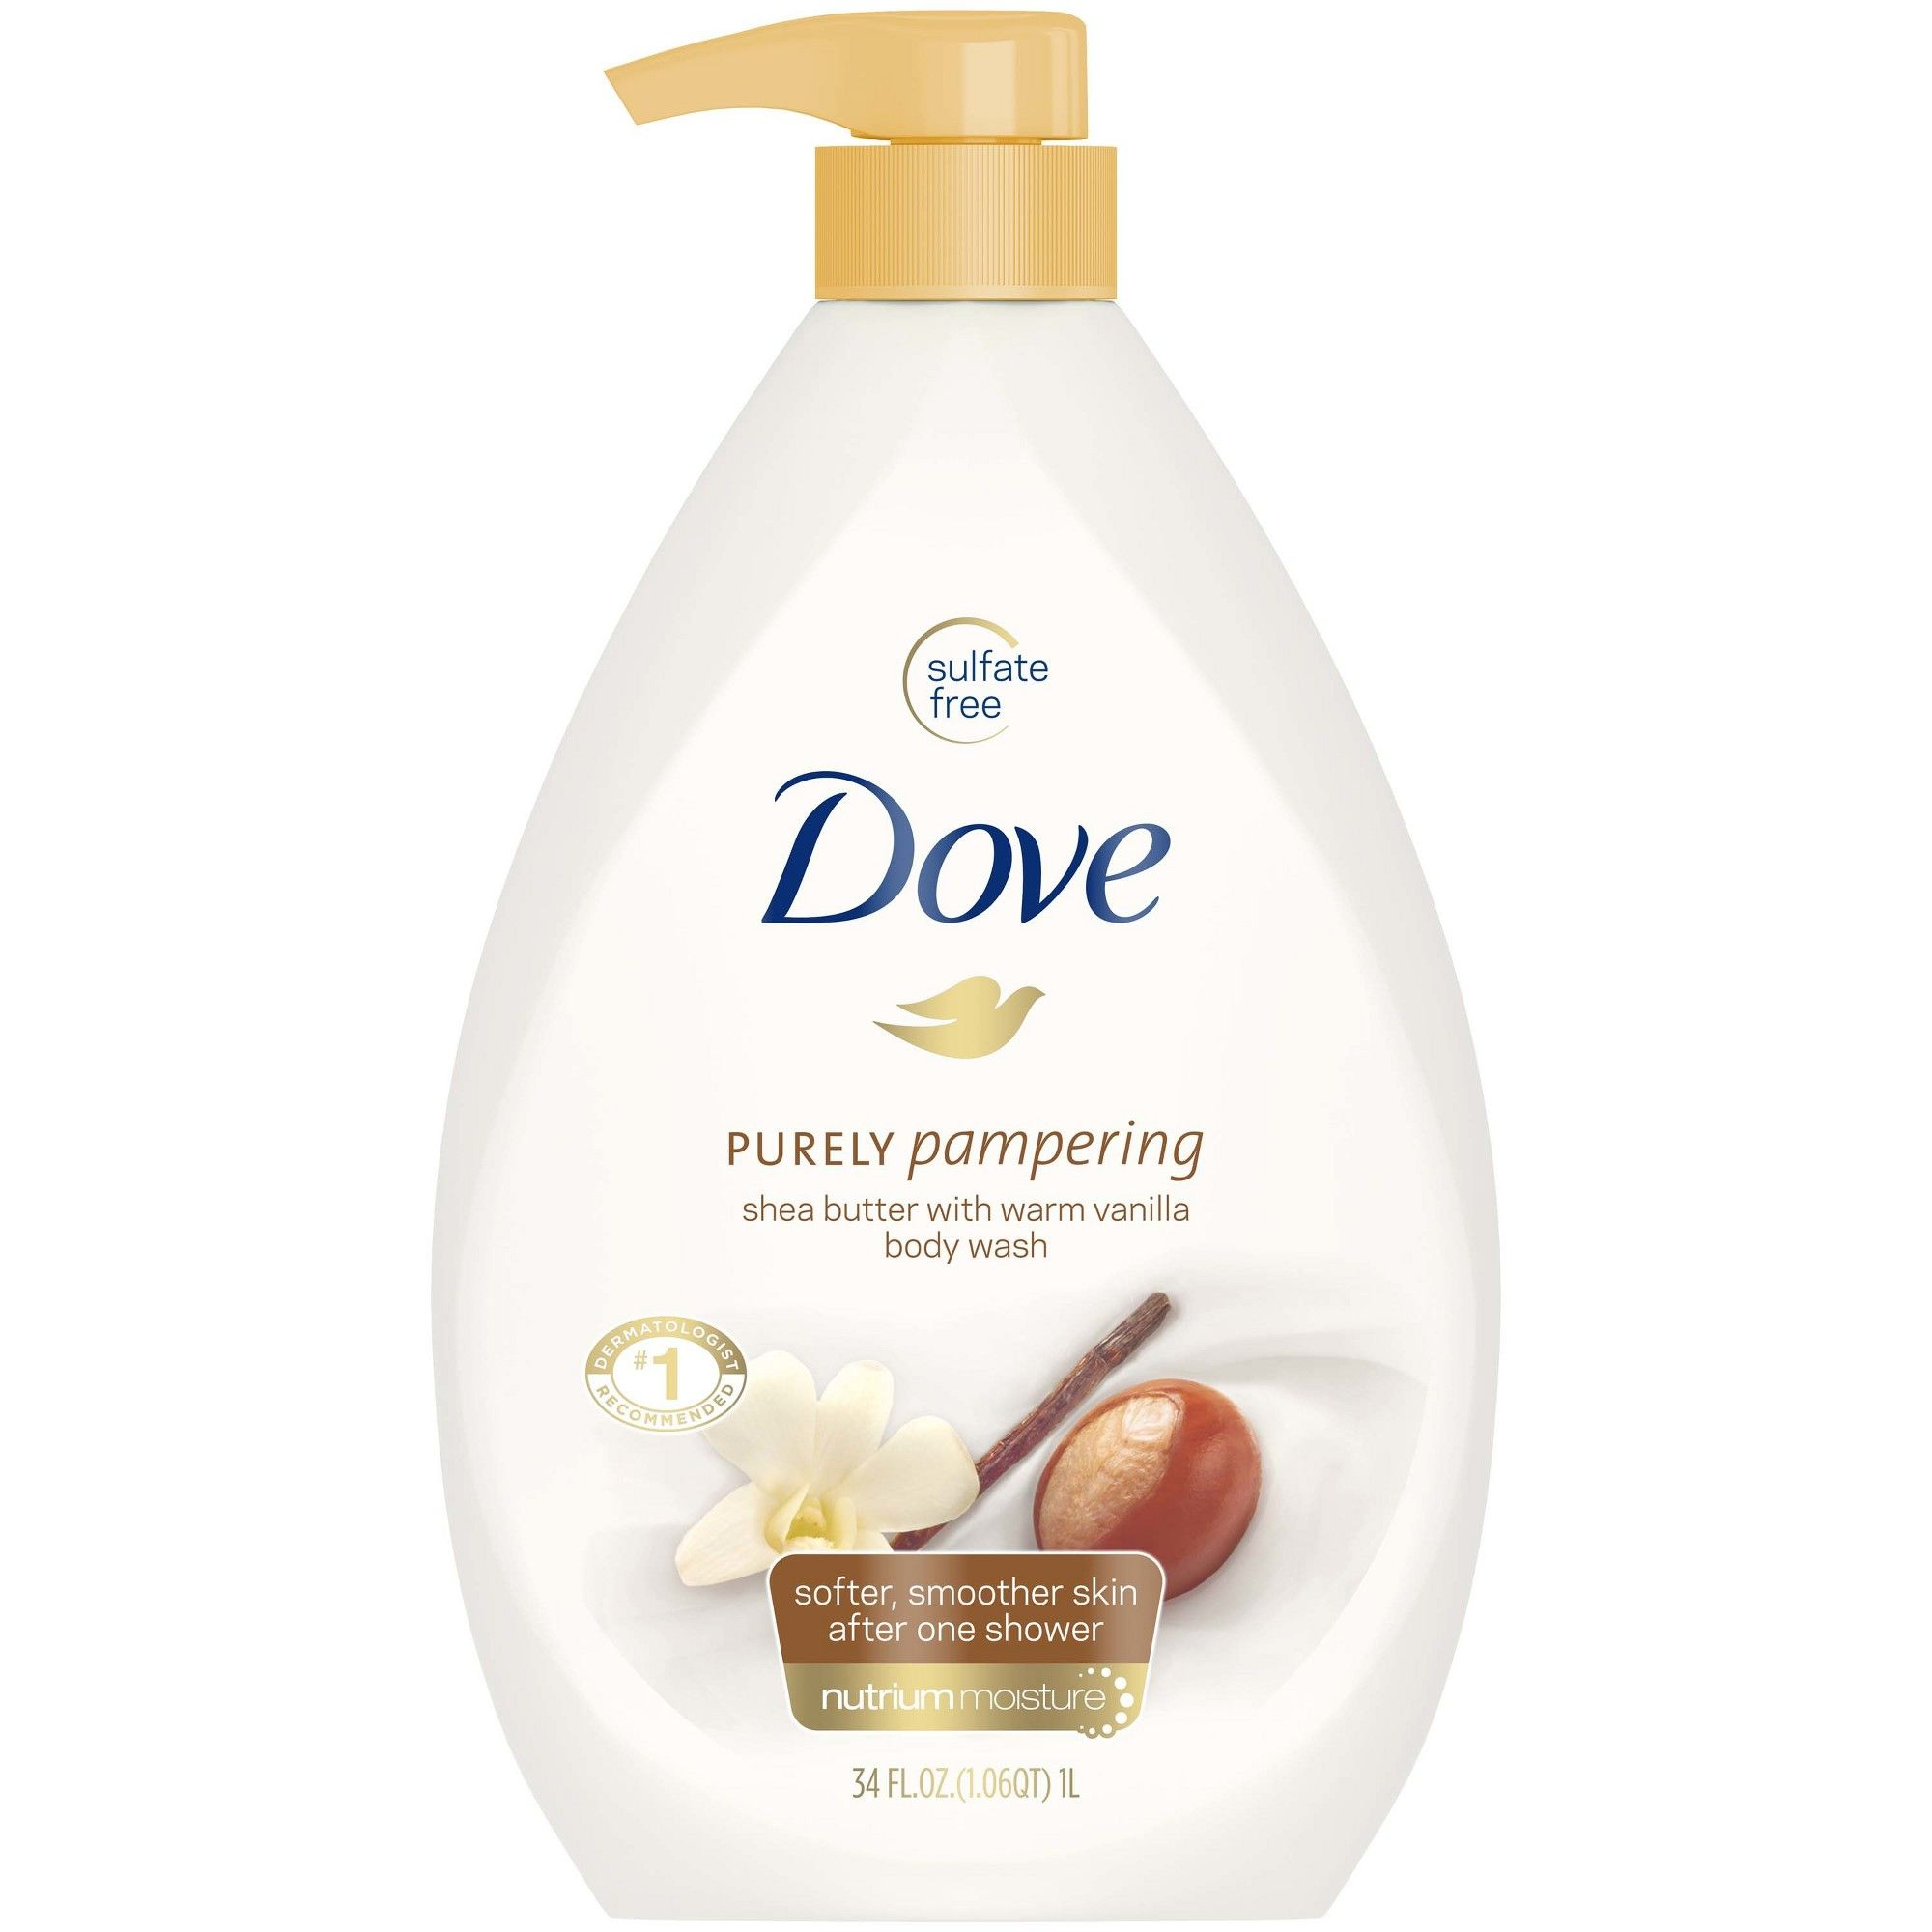 Dove Purely Pampering Shea Butter With Warm Vanilla Body Wash 34